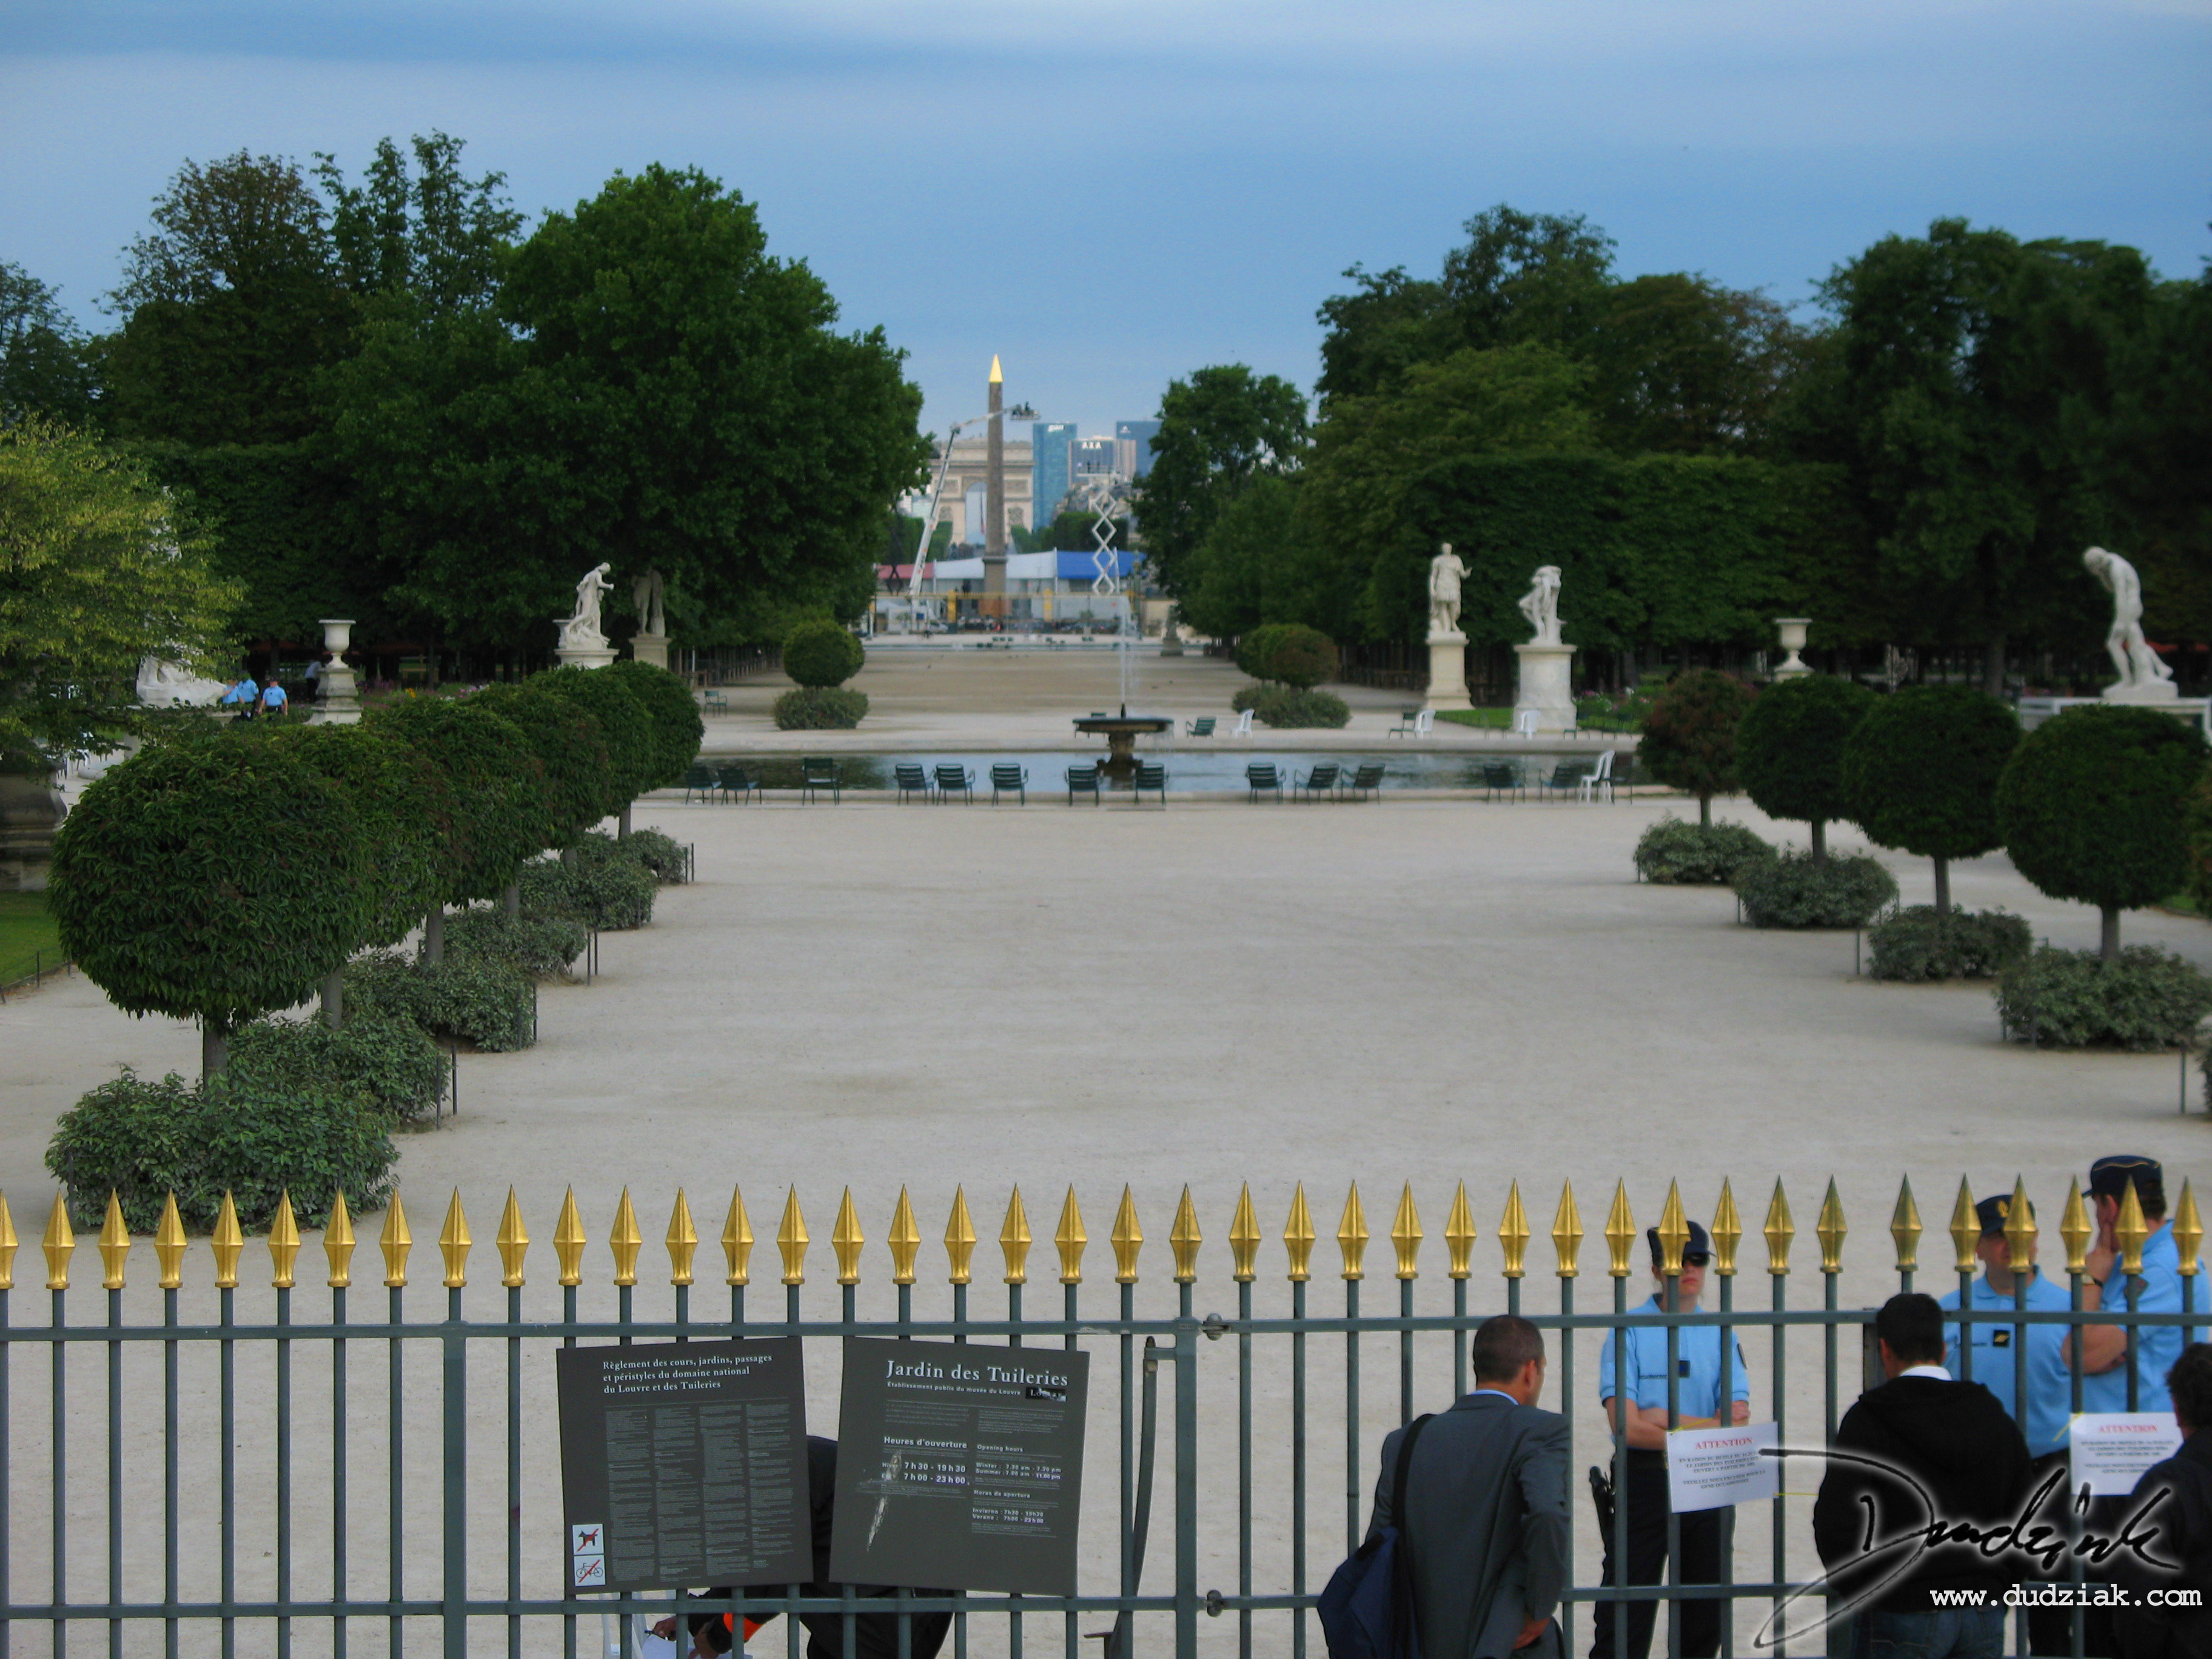 Paris,  France,  Bastille Day,  Quatorze Juillet,  Jardin des Tuileries